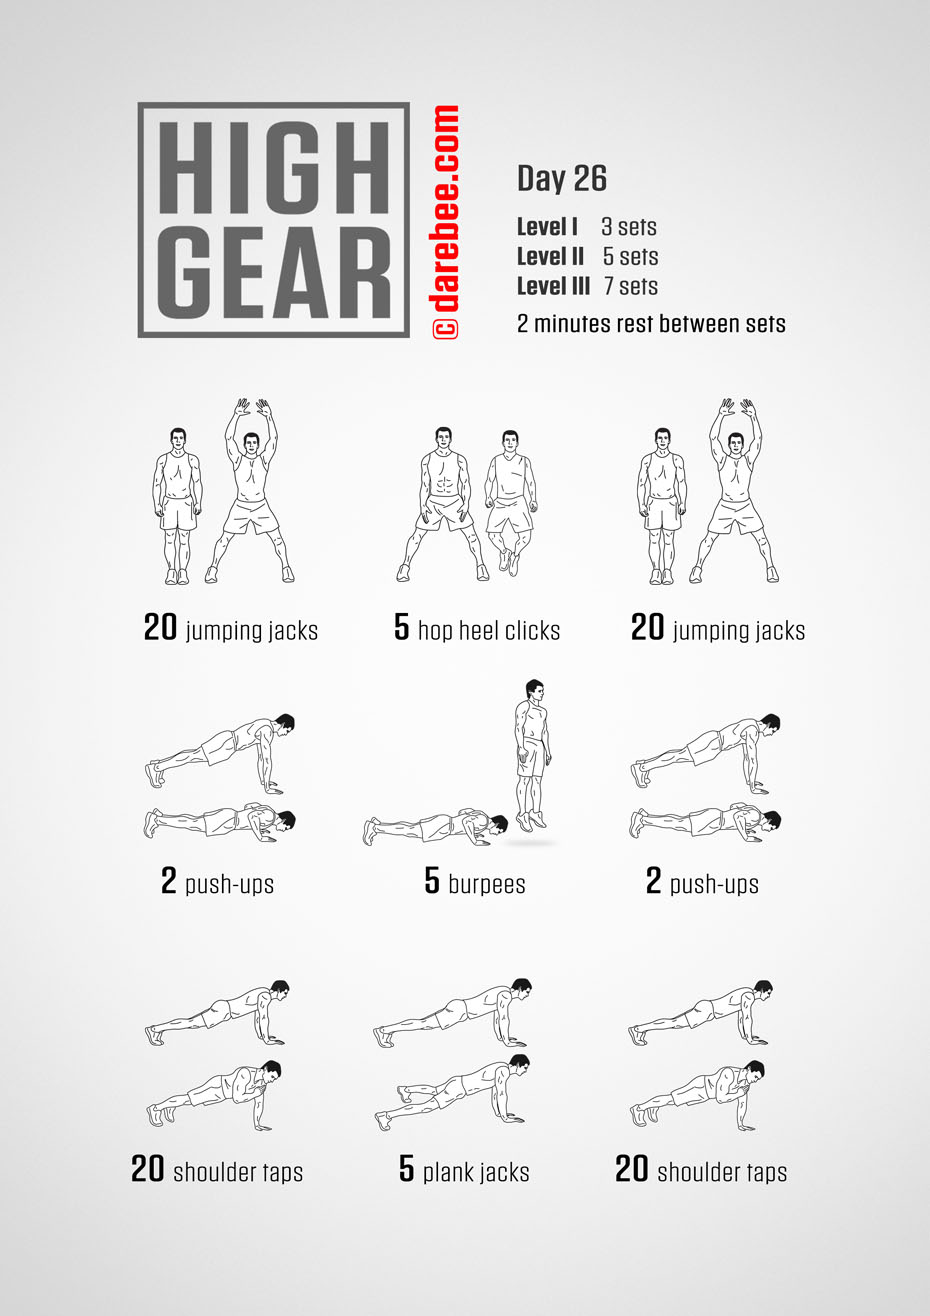 High Gear - 30 Day High Impact Bodyweight Program